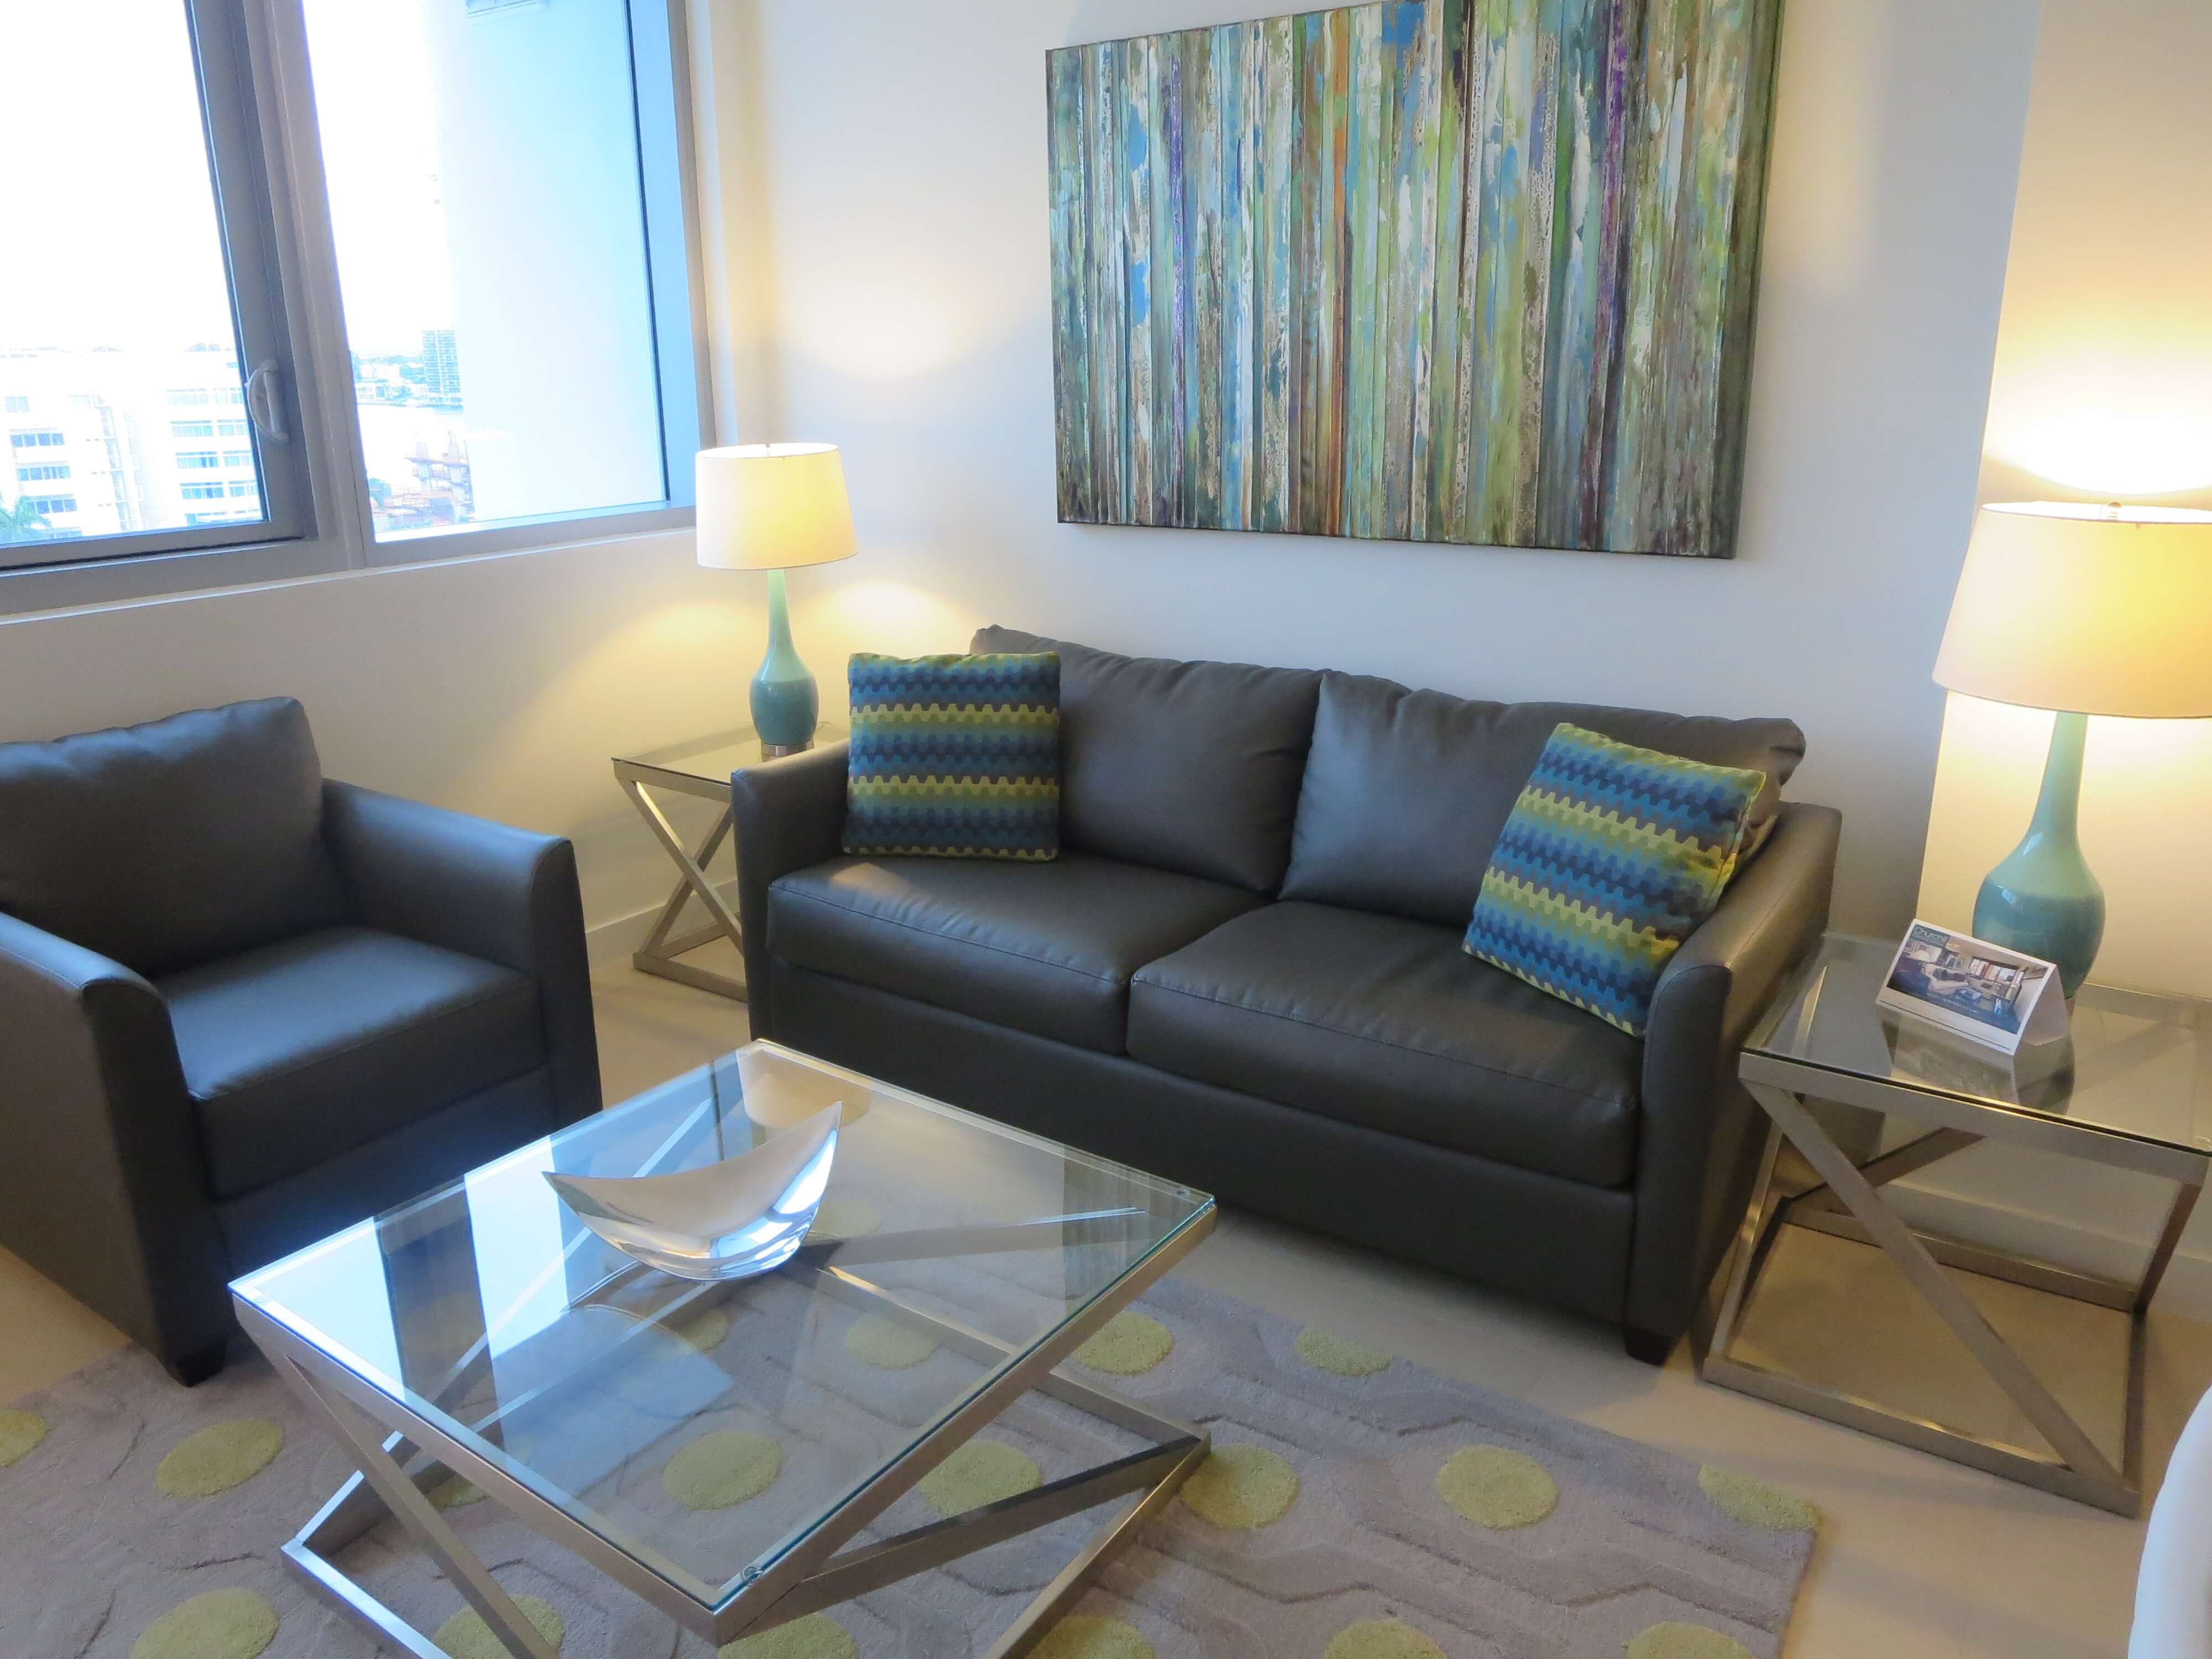 image 6 furnished 1 bedroom Apartment for rent in North Miami Beach, Miami Area